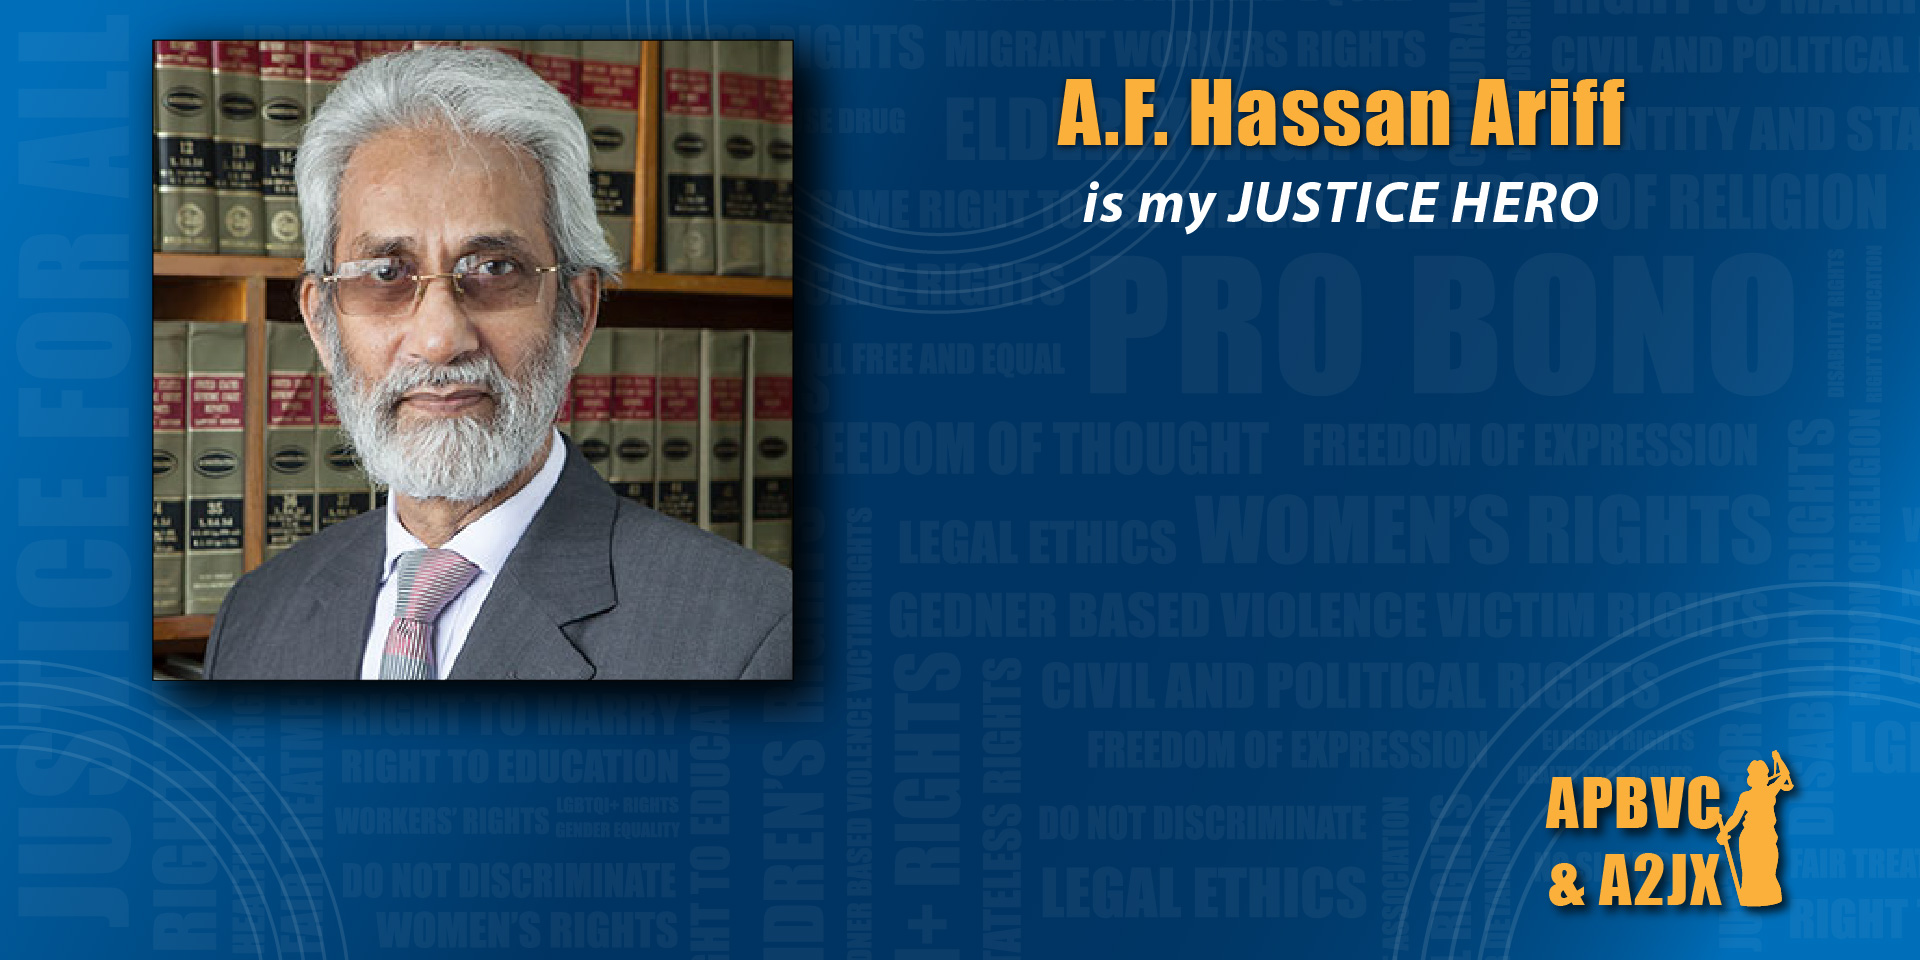 A.F. Hassan Ariff